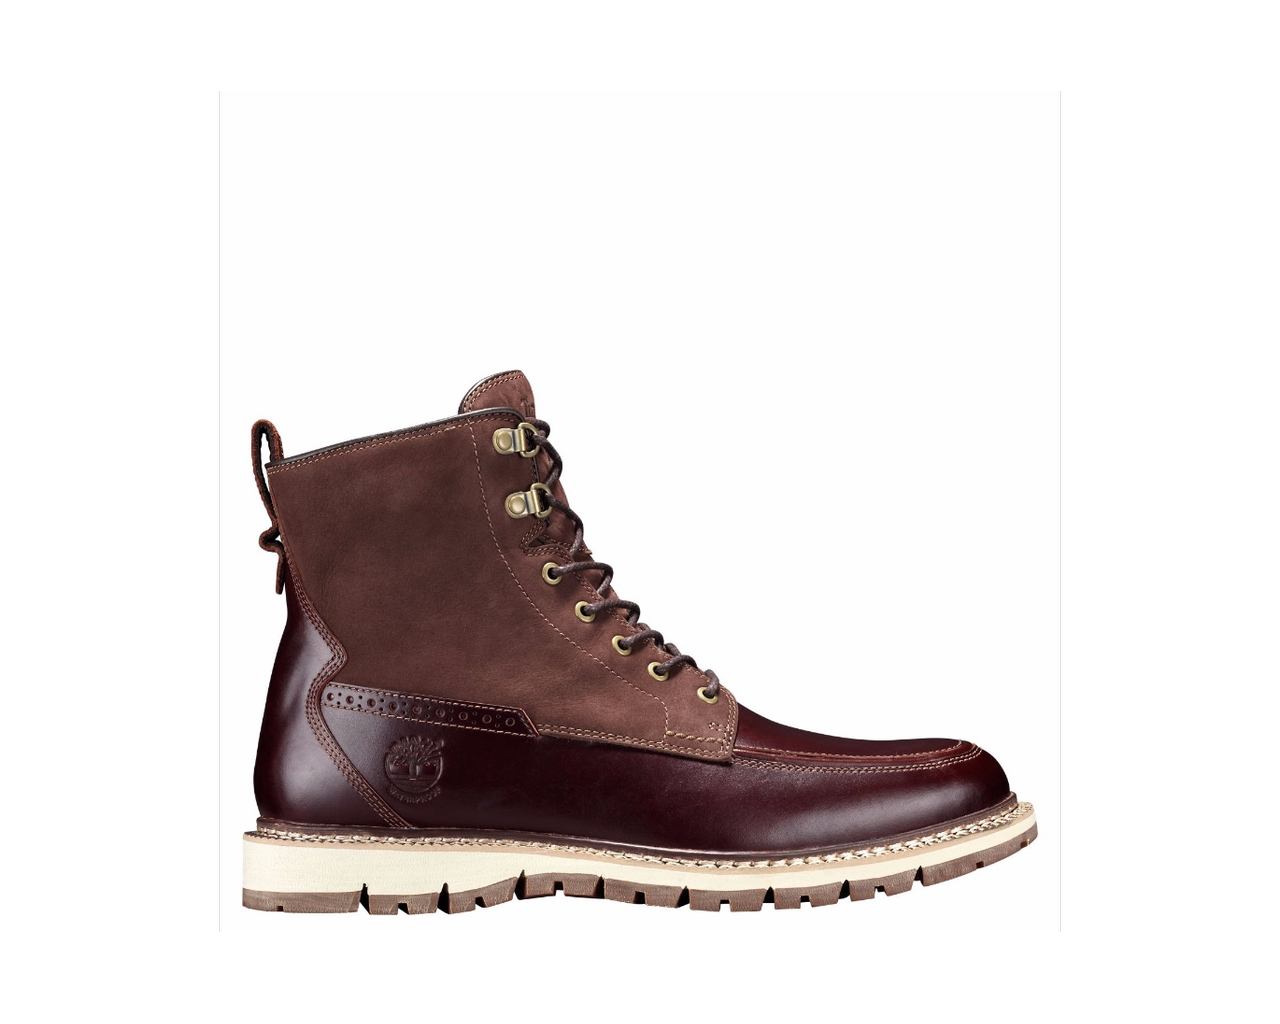 Men's Timberland Britton Hill Moc Toe Waterproof Boots Style#a1253 by